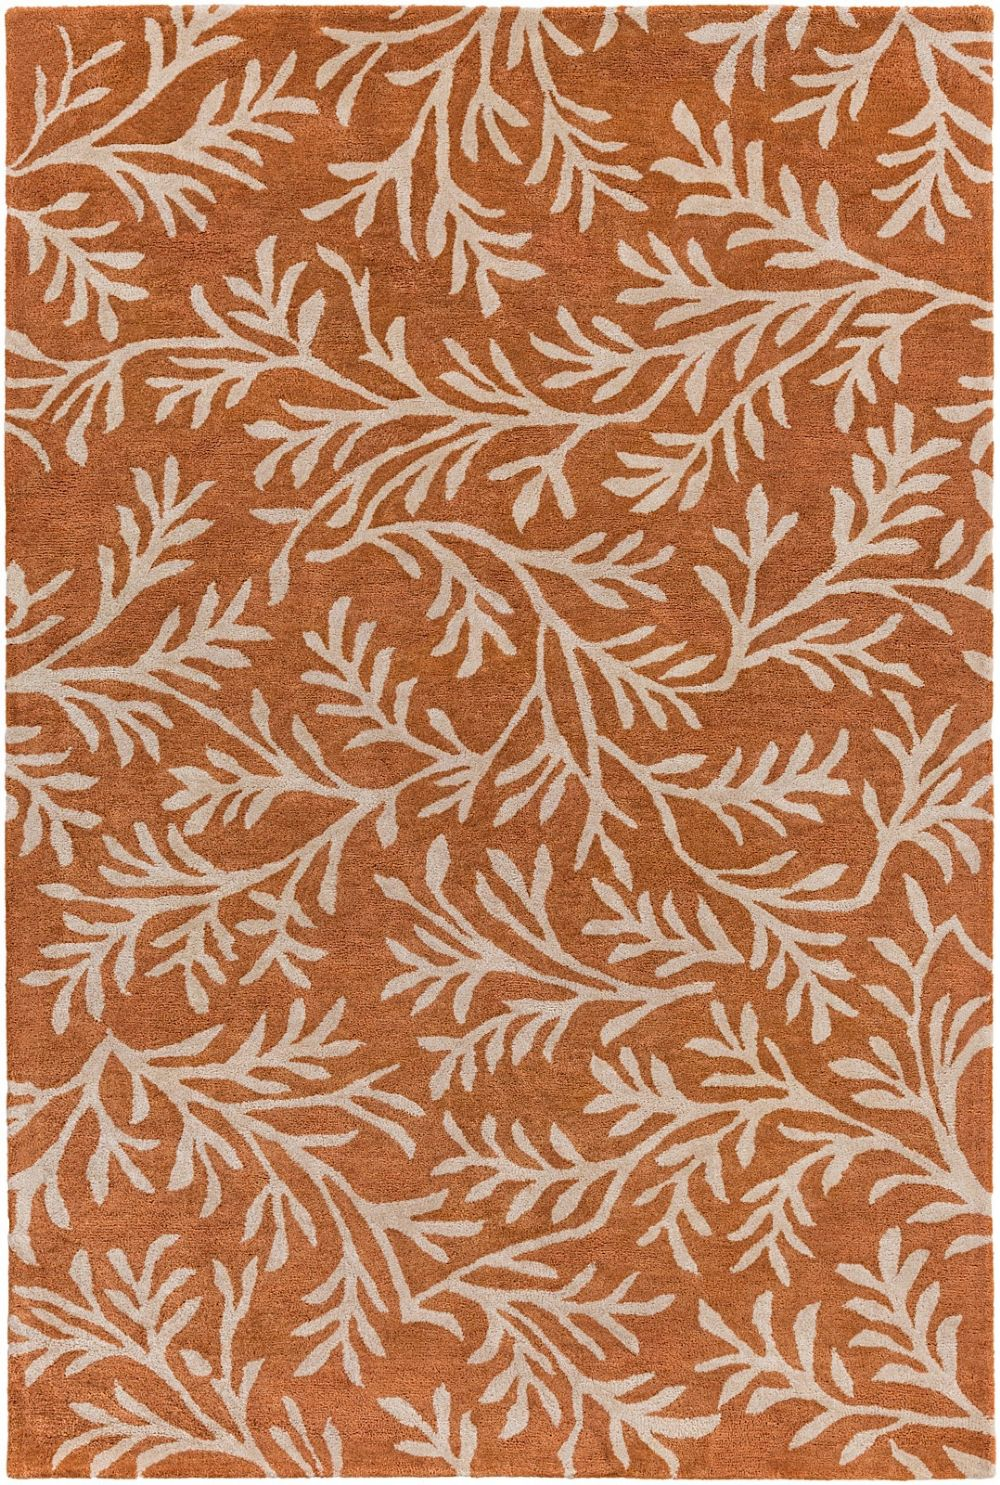 surya brilliance country & floral area rug collection